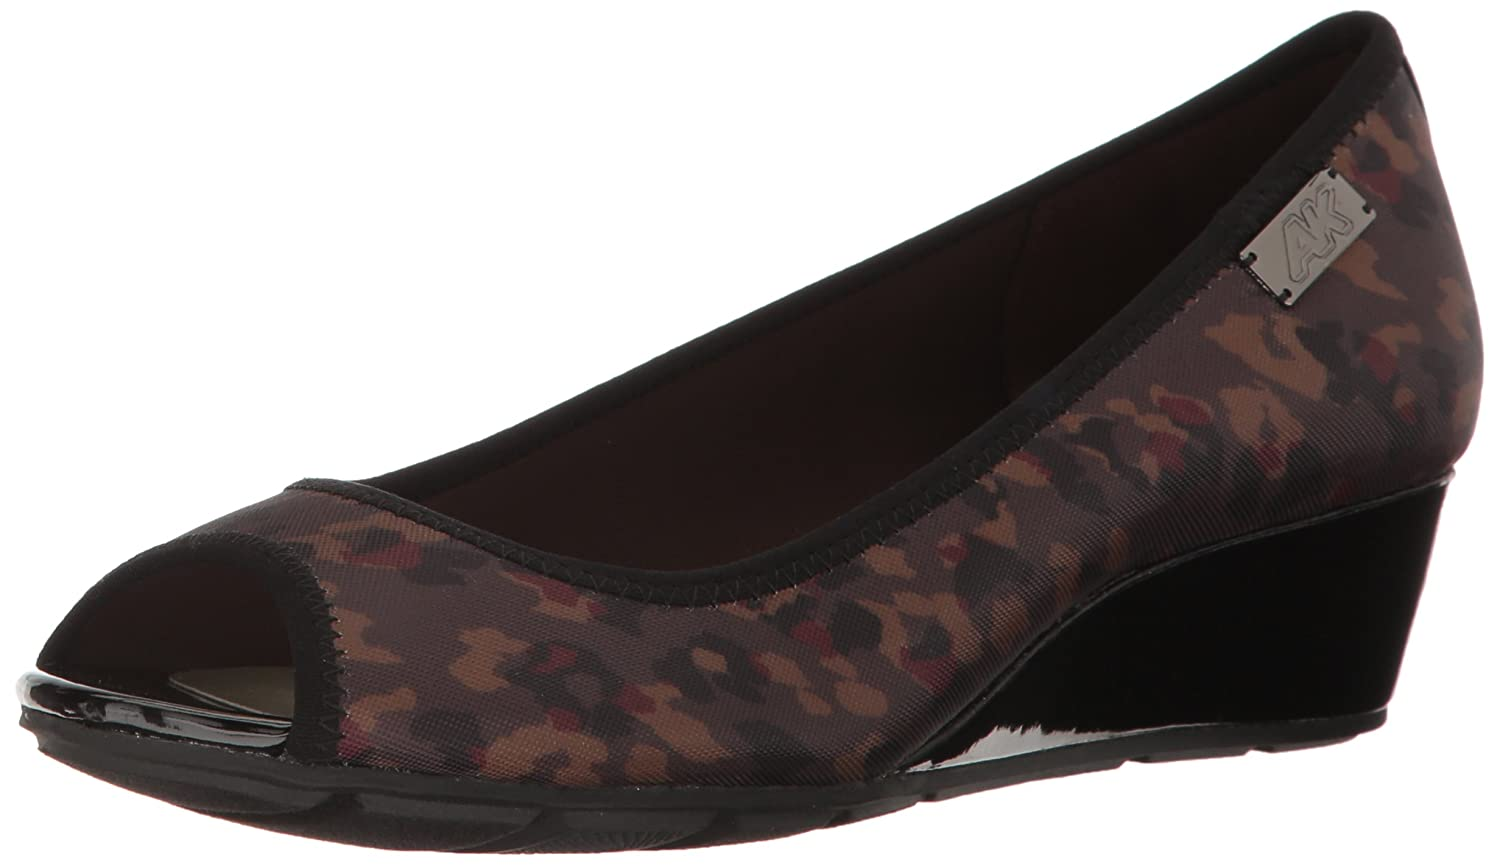 Anne Klein Sport Women's Camrynne Fabric Wedge Pump B01N0Q8YUN 9.5 B(M) US|Dark Brown/Multi Fabric